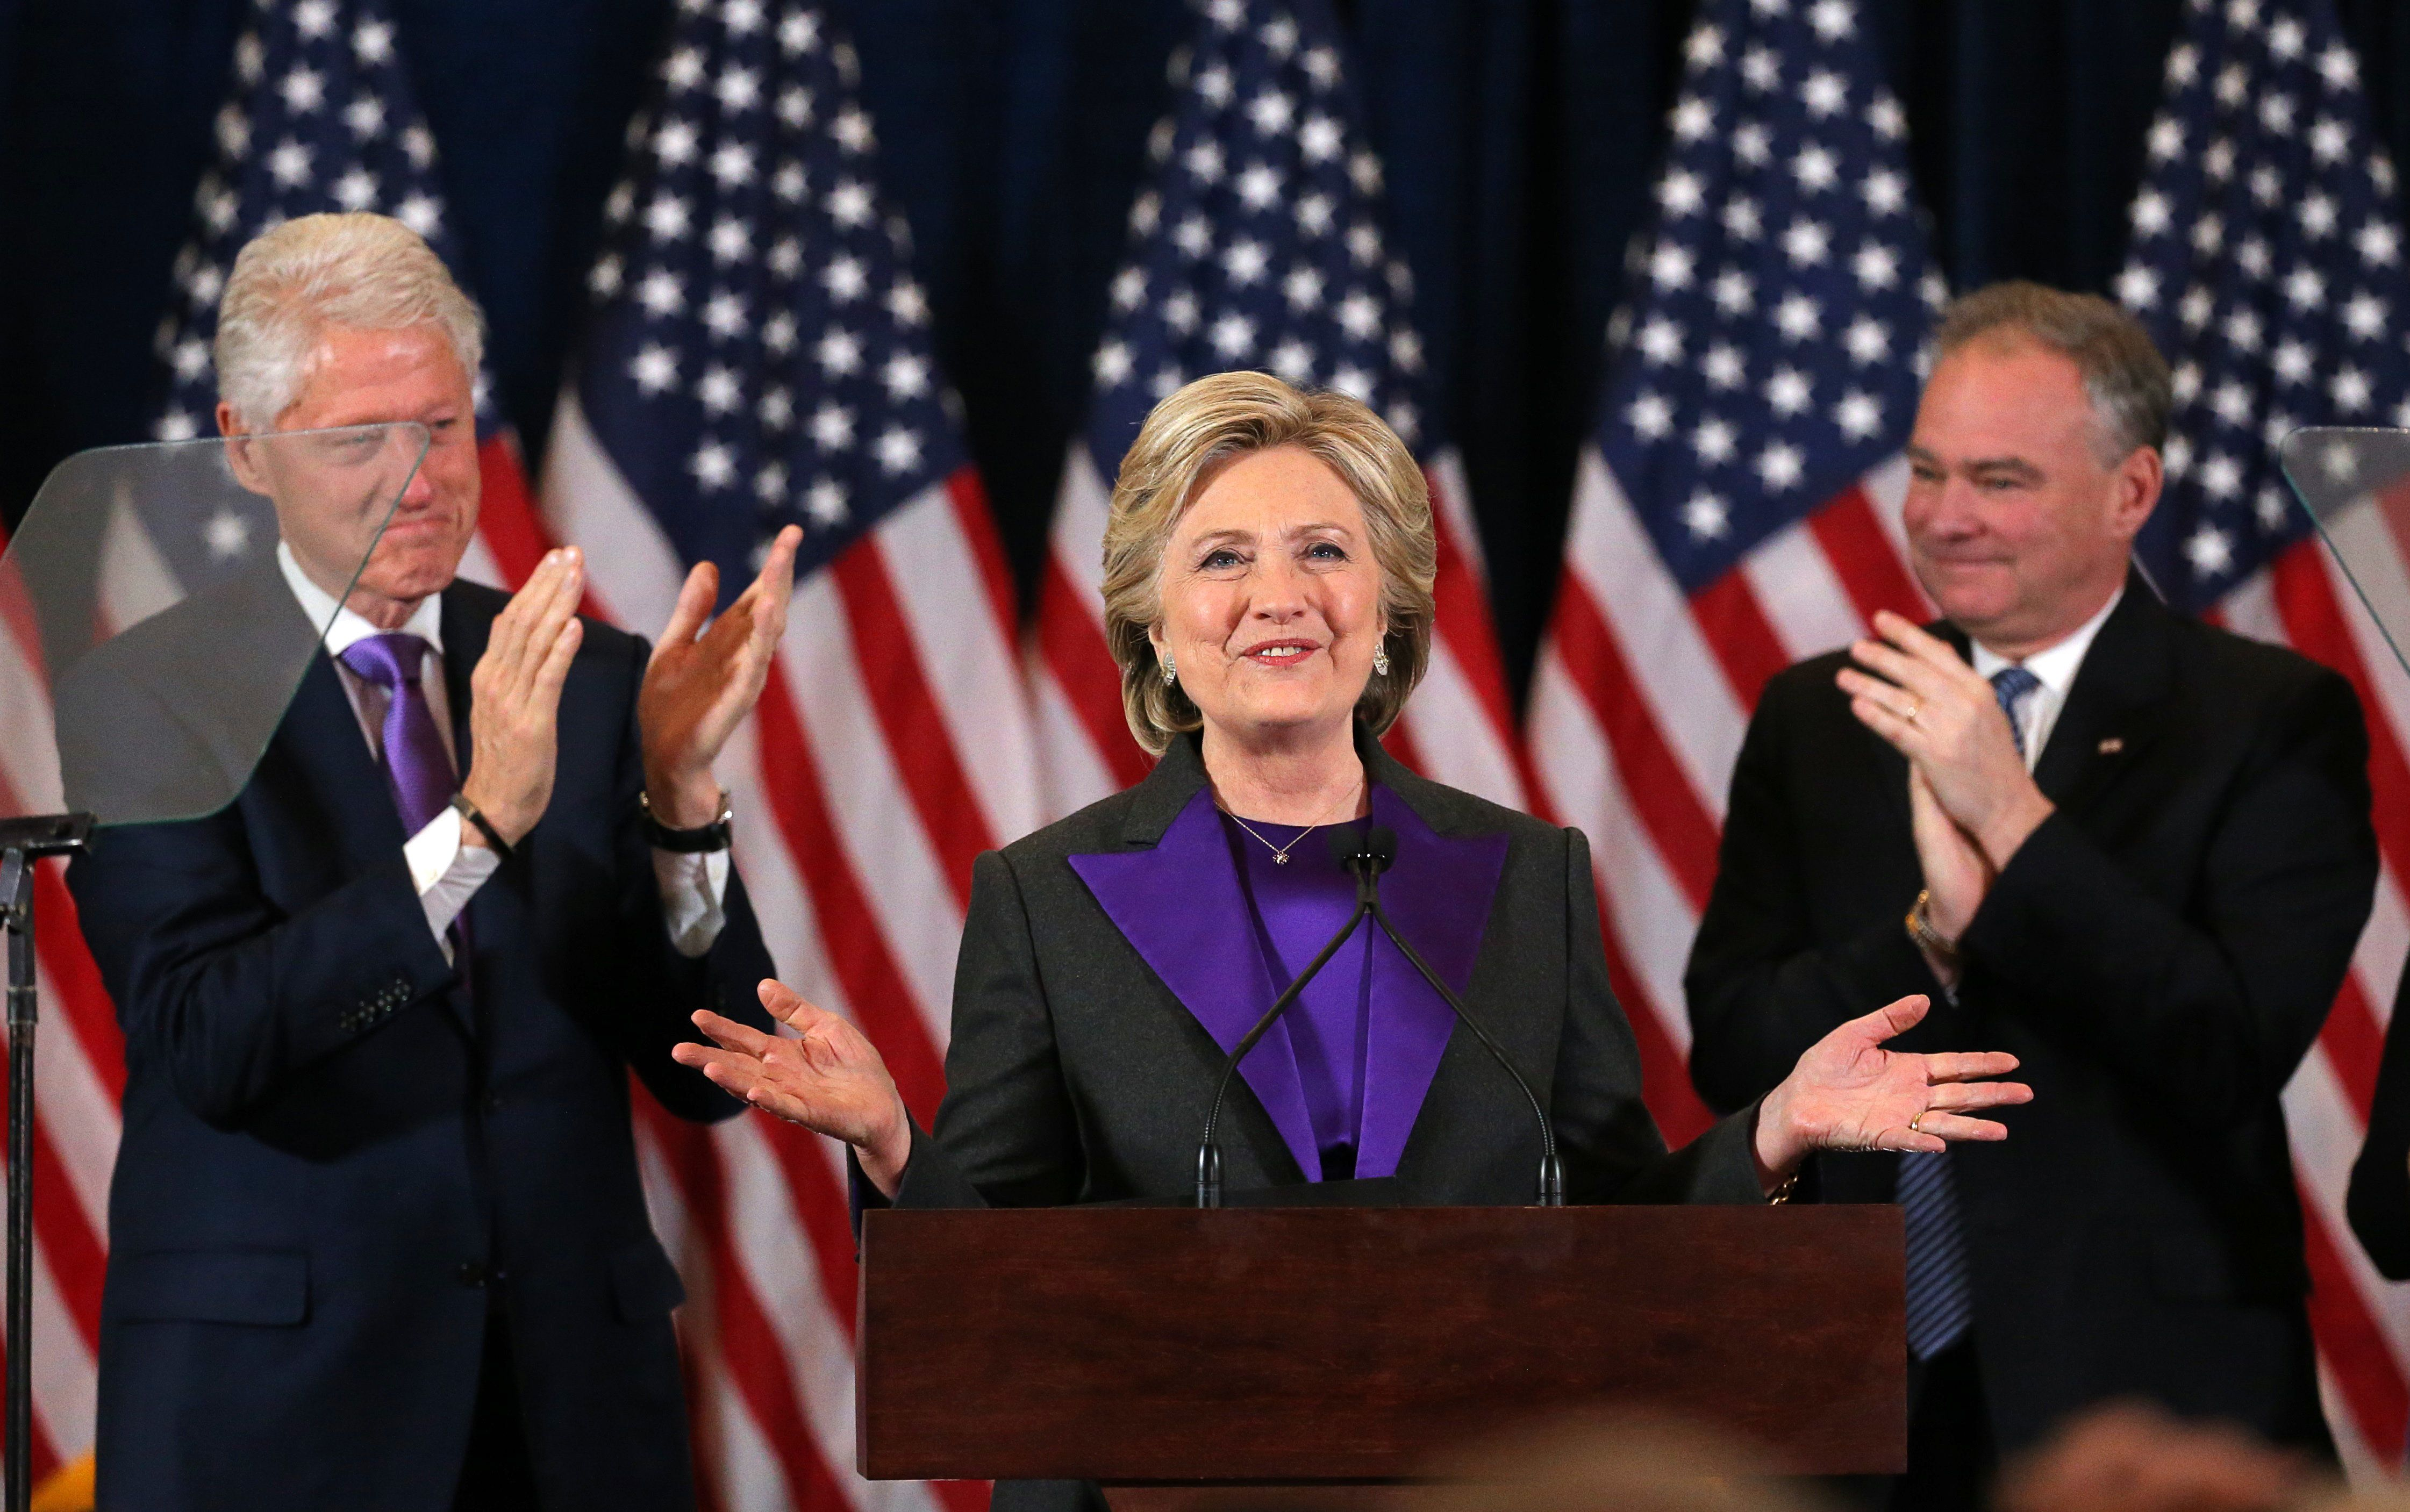 Democratic presidential candidate Hillary Clinton, with her husband, former U.S. President Bill Clinton, (L), and her Vice-President running mate Tim Kaiine (R), applaud at her concession speech to President-elect Donald Trump in New York, U.S., November 9, 2016.        REUTERS/Carlos Barria    TPX IMAGE OF THE DAY